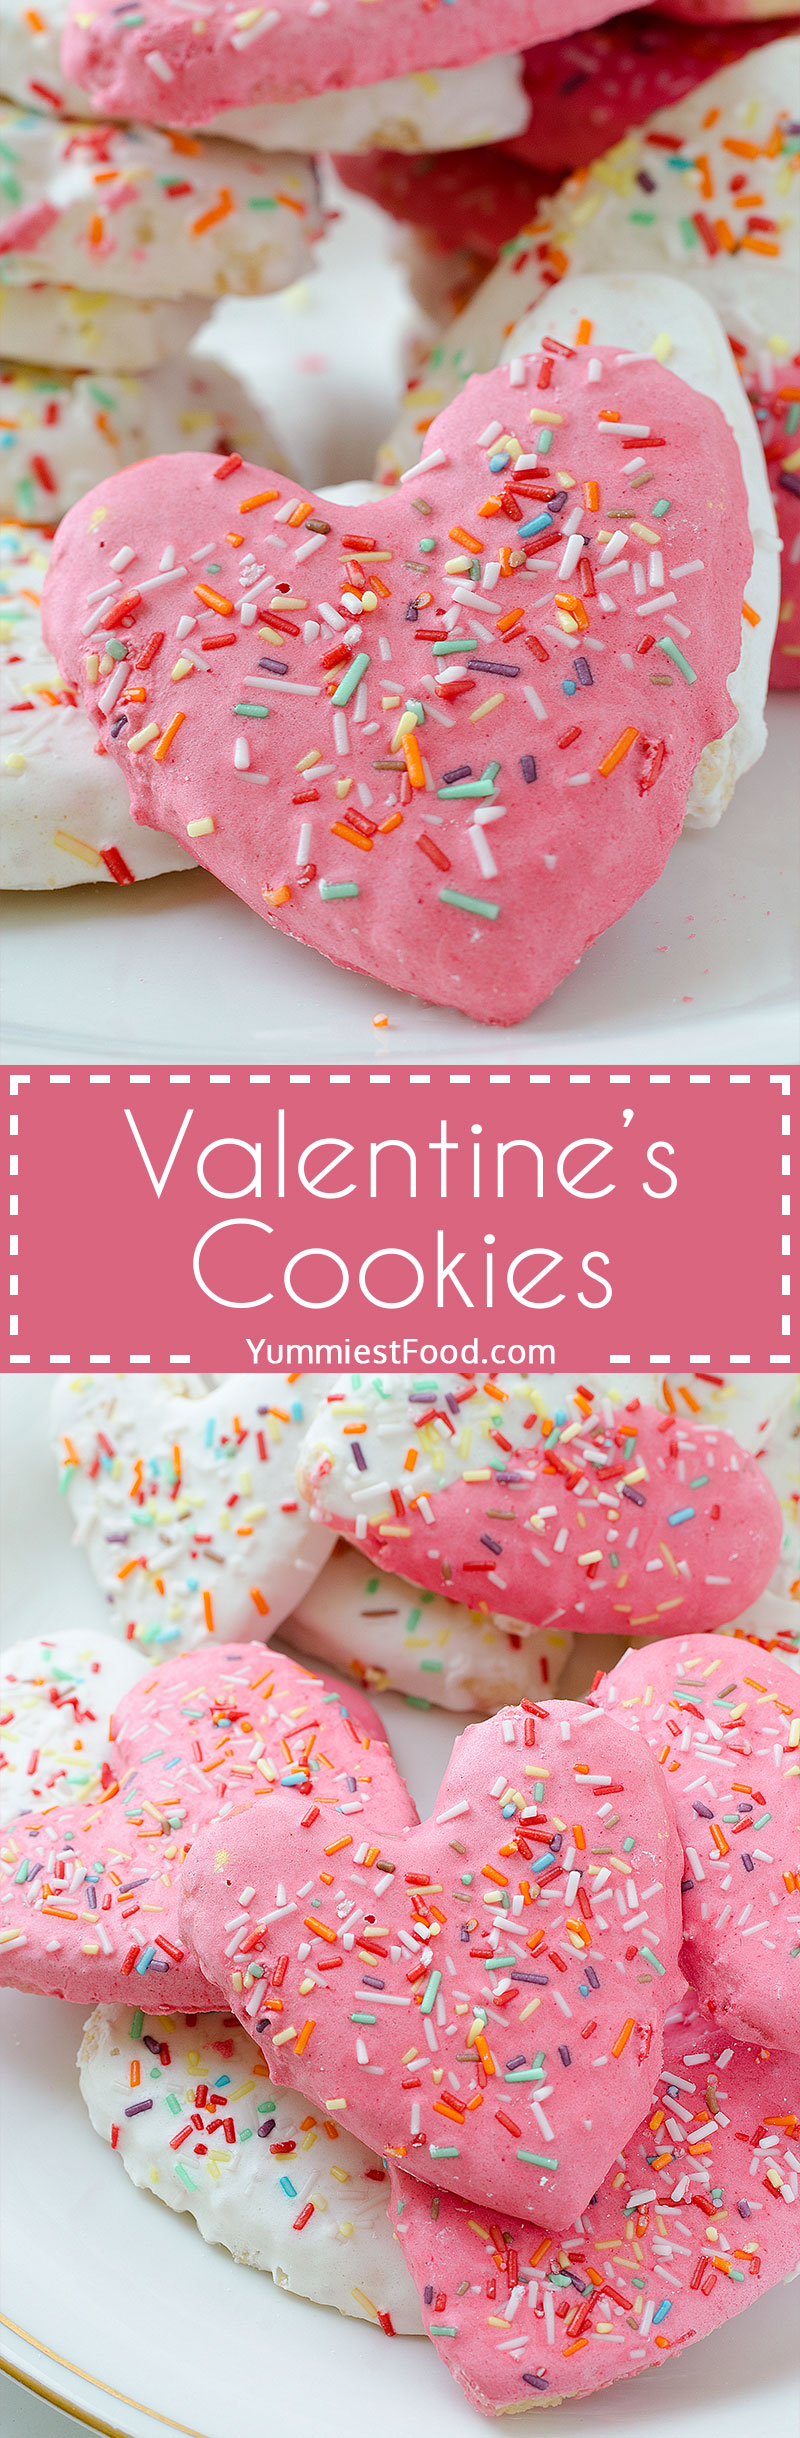 Valentine's Cookies - It is Valentine's day, let it be magical, romantic and unforgettable! With Valentine's cookies you will bring joy in your home